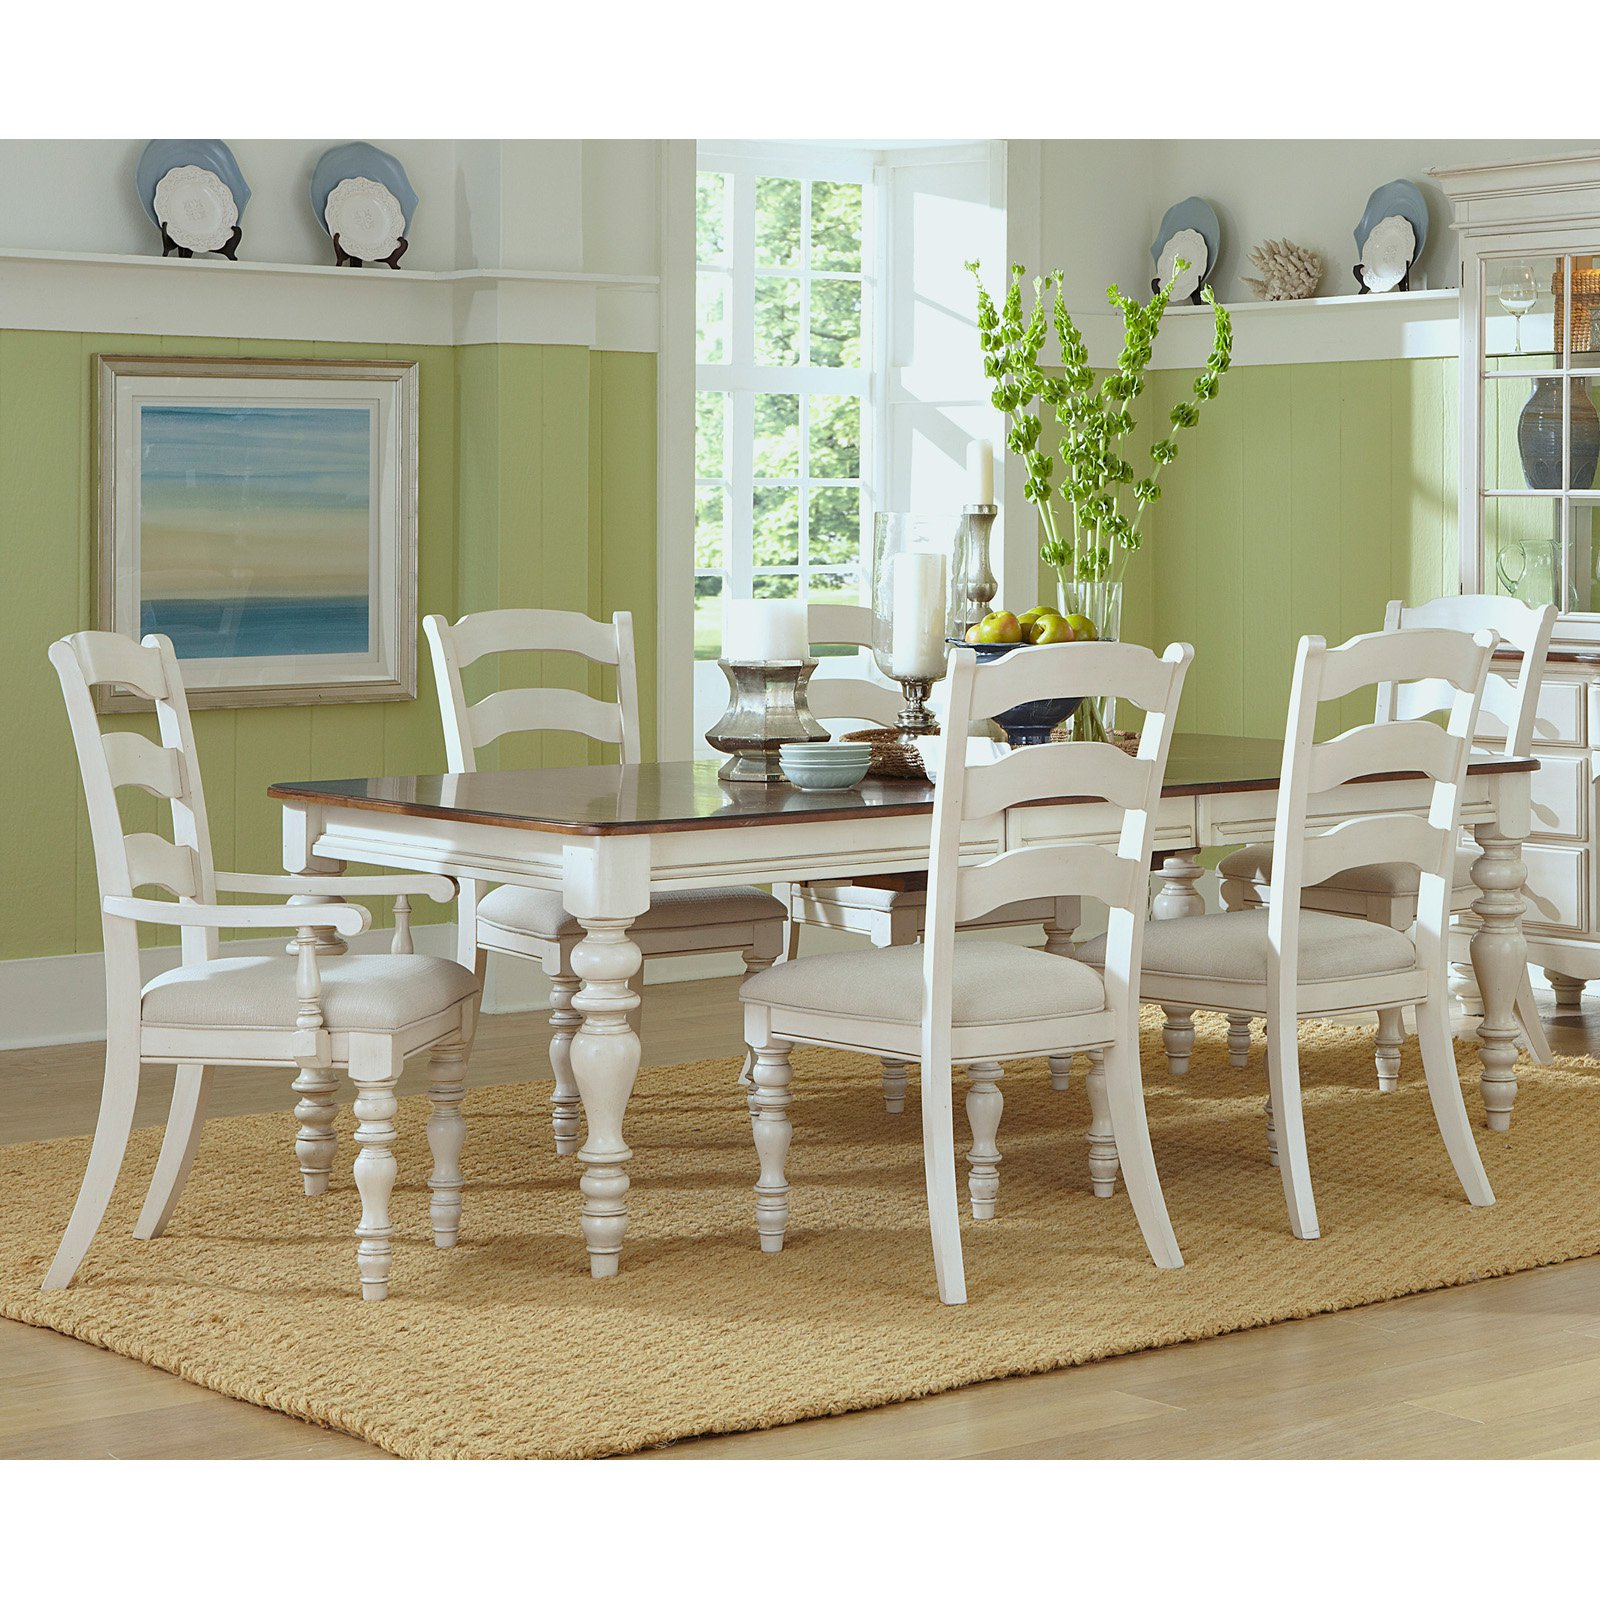 Hillsdale Furniture Pine Island 7 Piece Dining Set, With Ladder Back Chairs